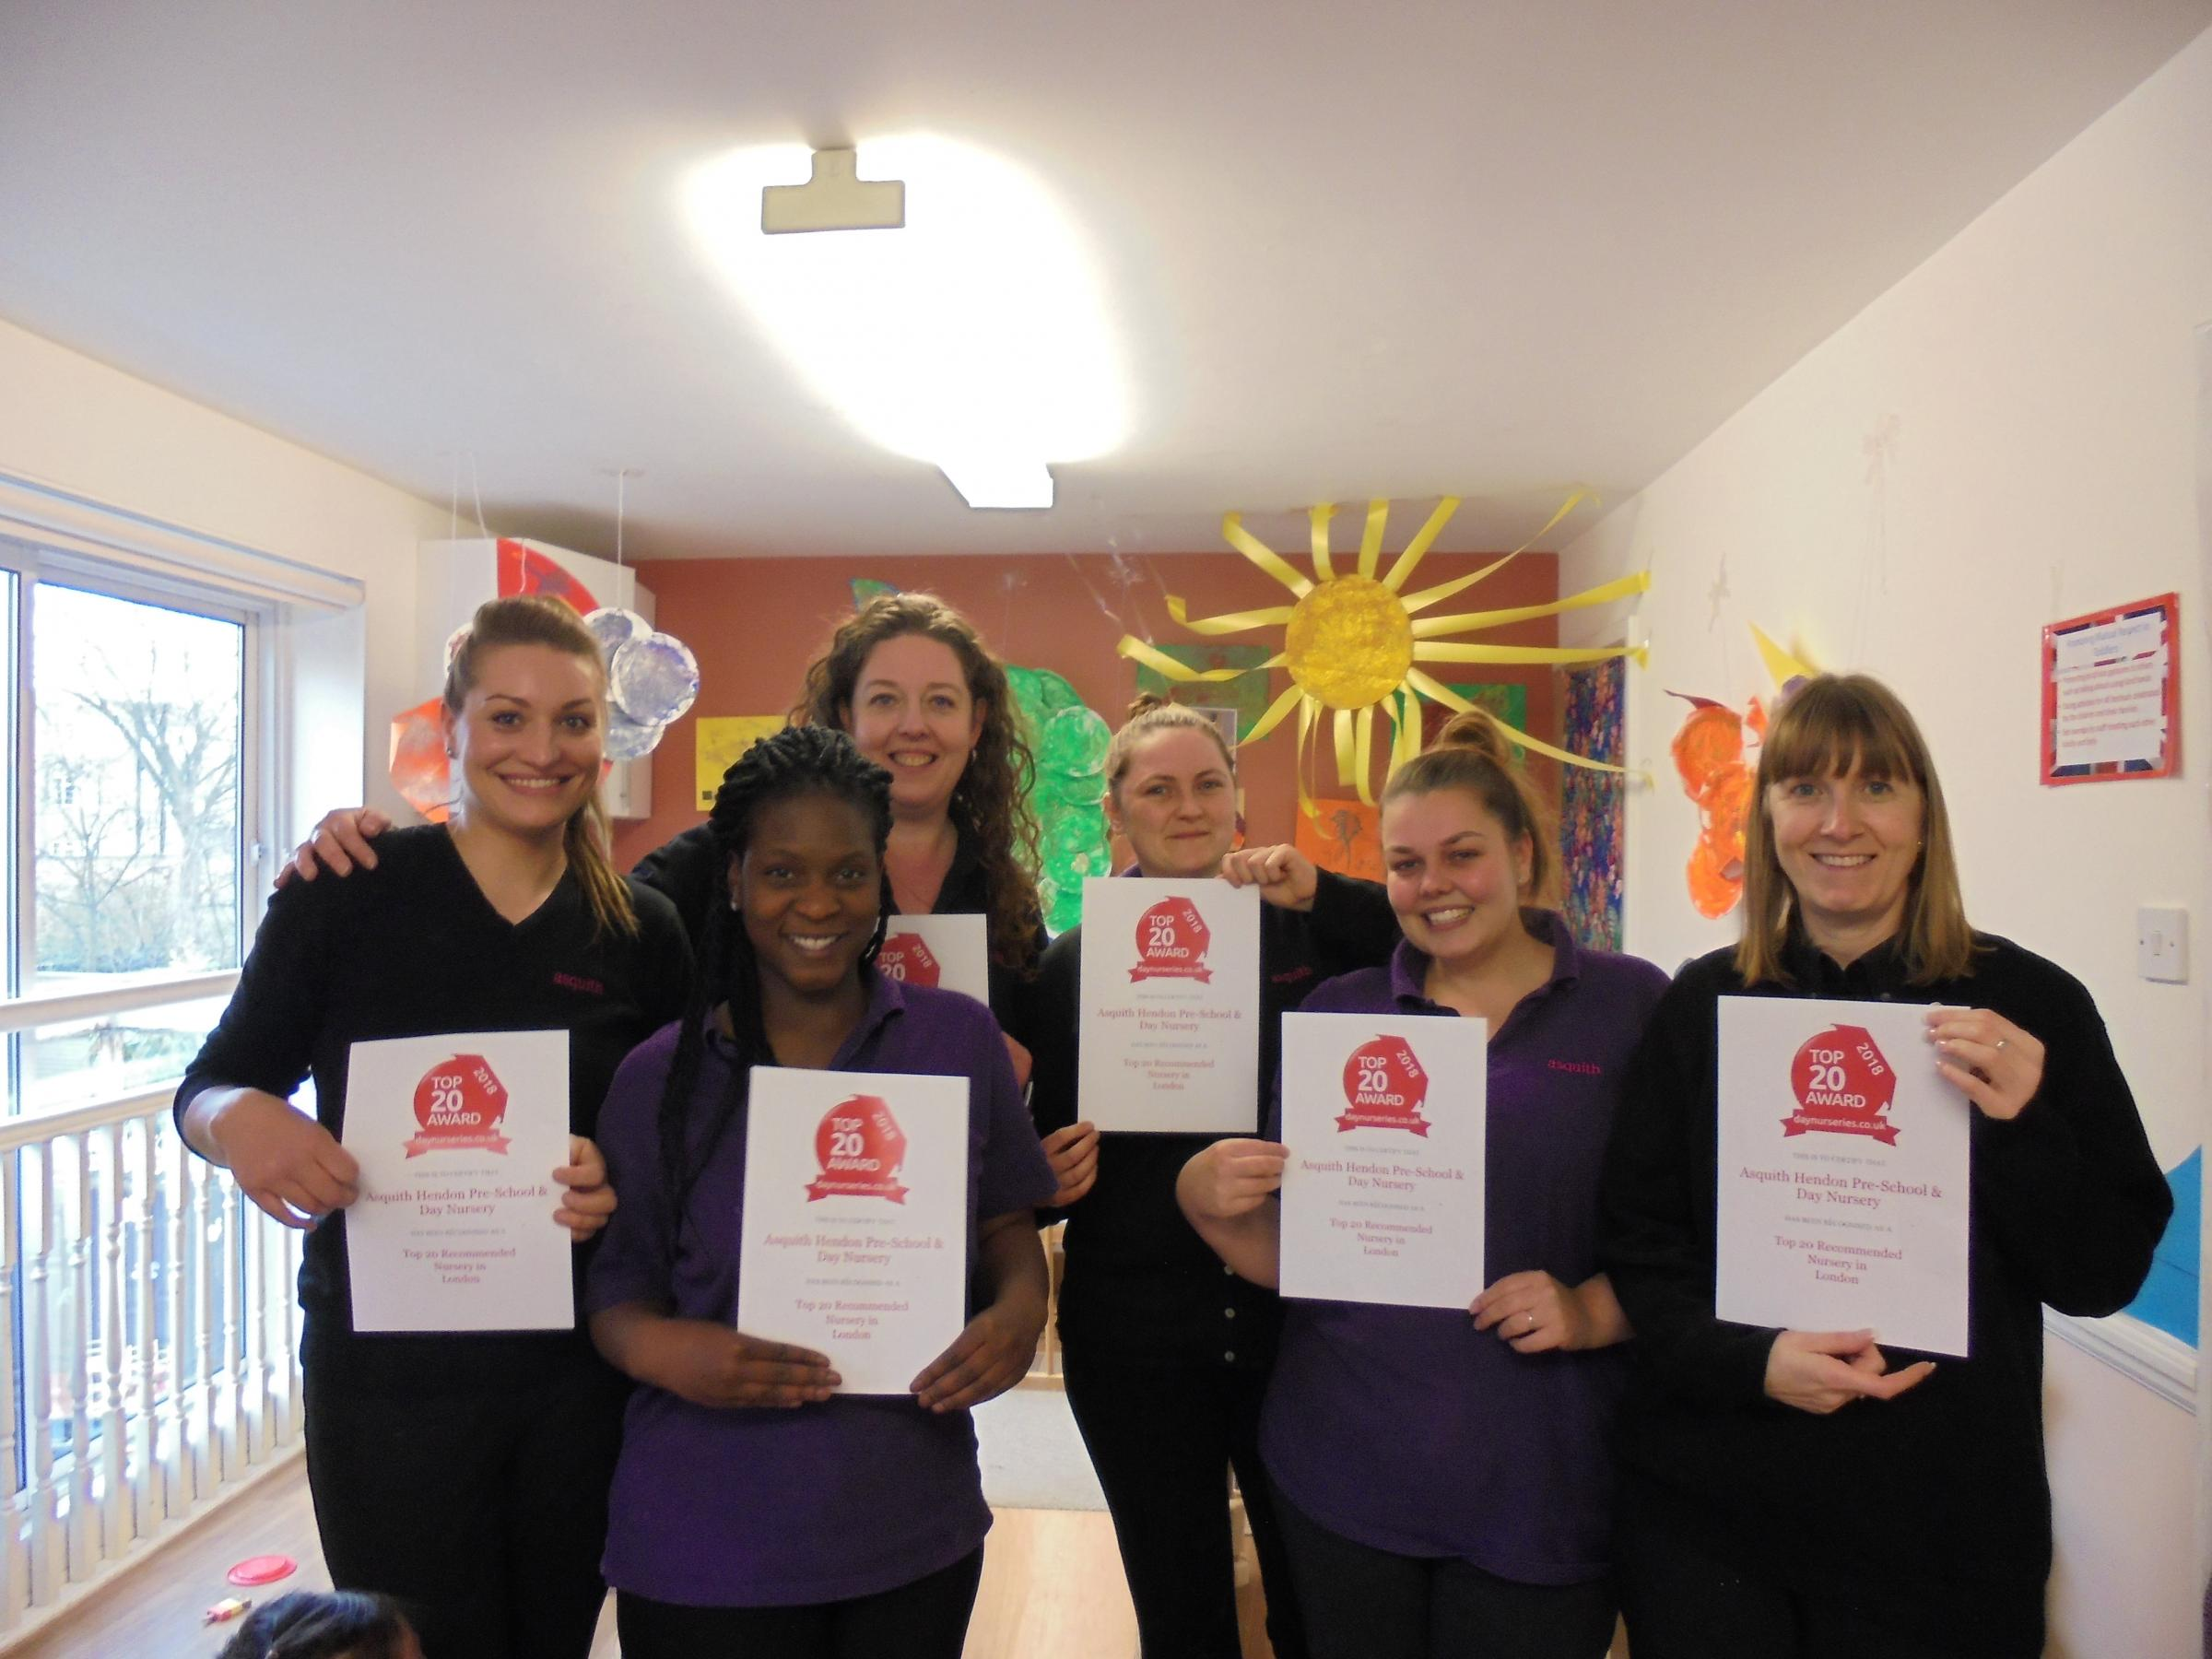 Bright Horizons Asquith Hendon Pre-School and Day Nursery has been rated among the top 20 nurseries throughout London.